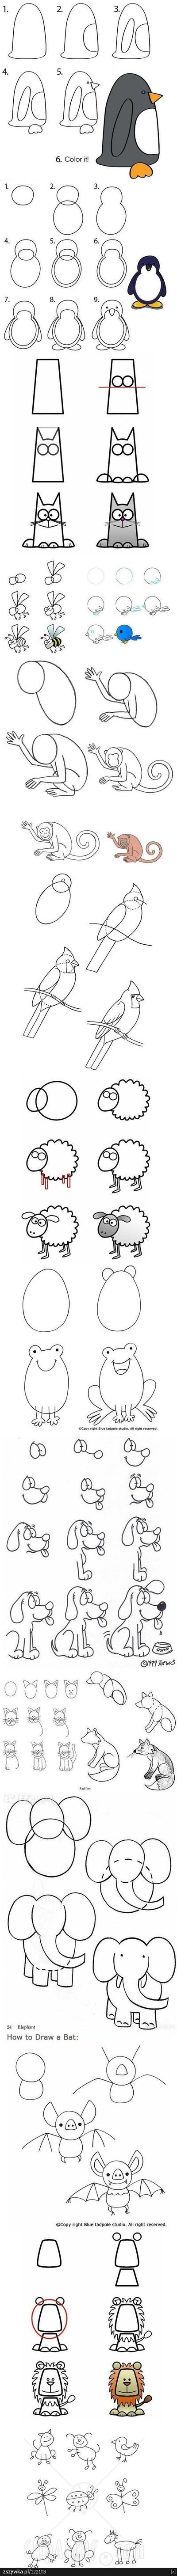 28 best drawing for kids images on pinterest drawings drawing